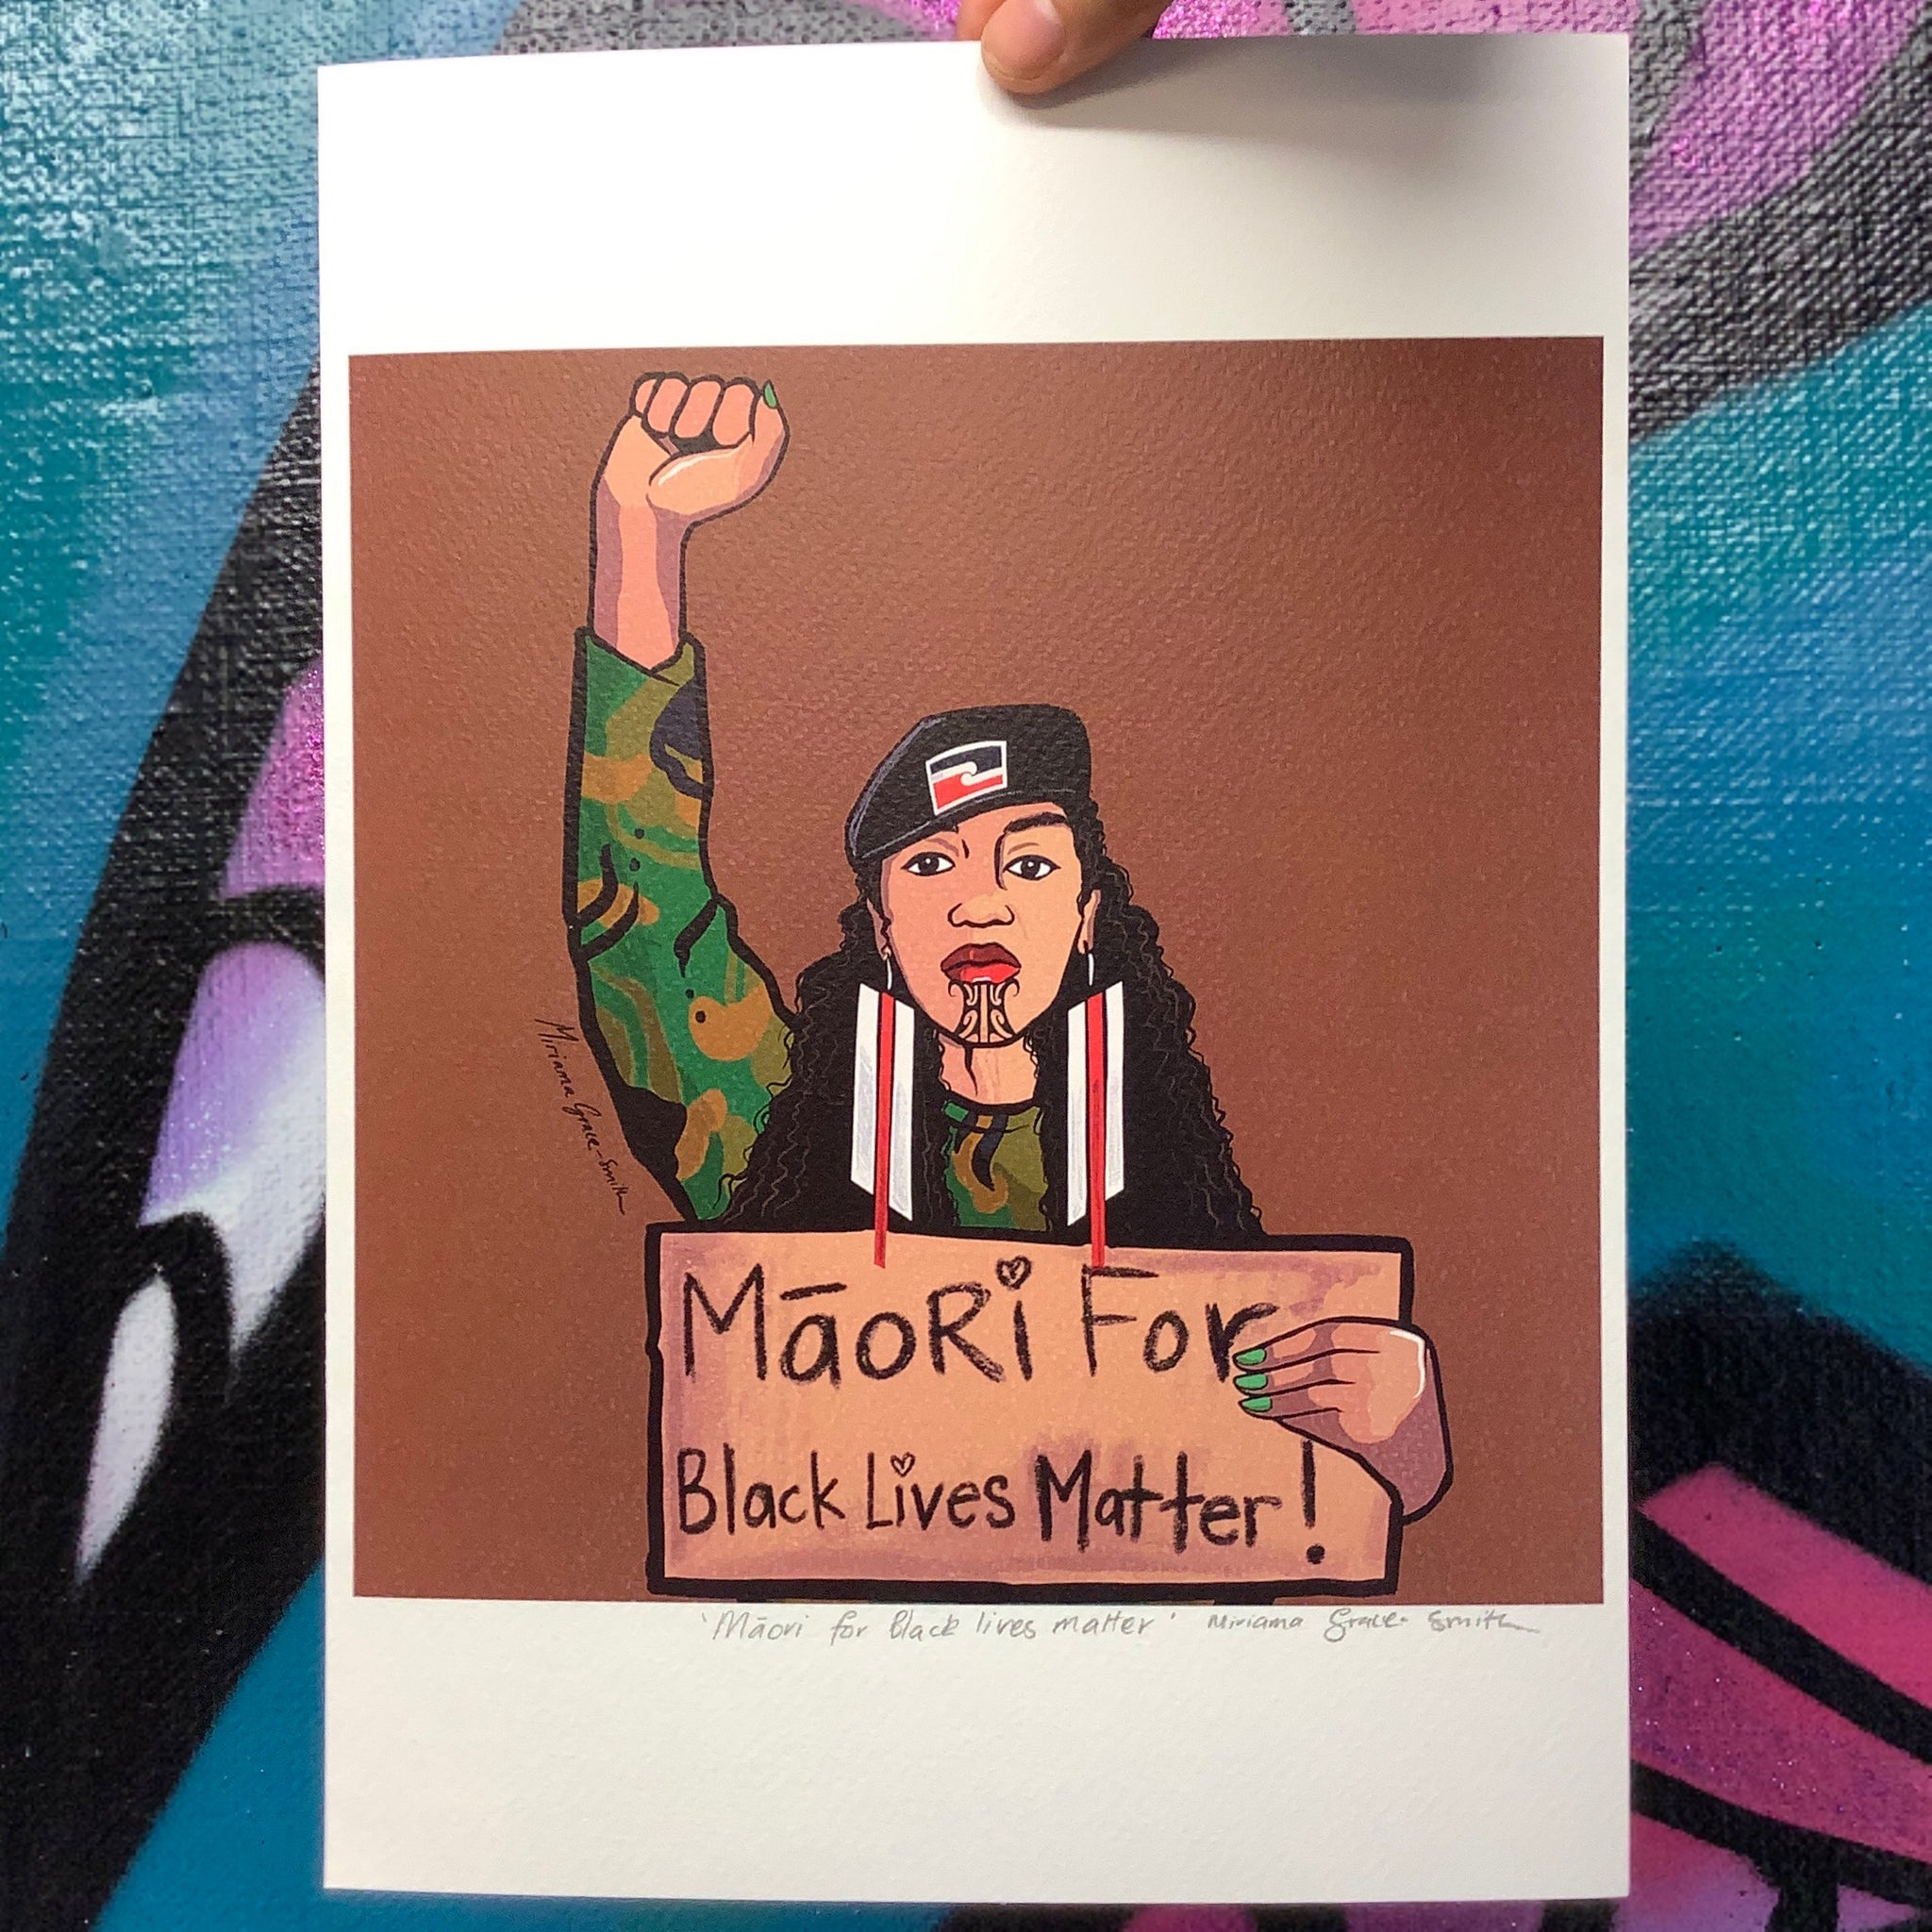 Māori for Black Lives Matter